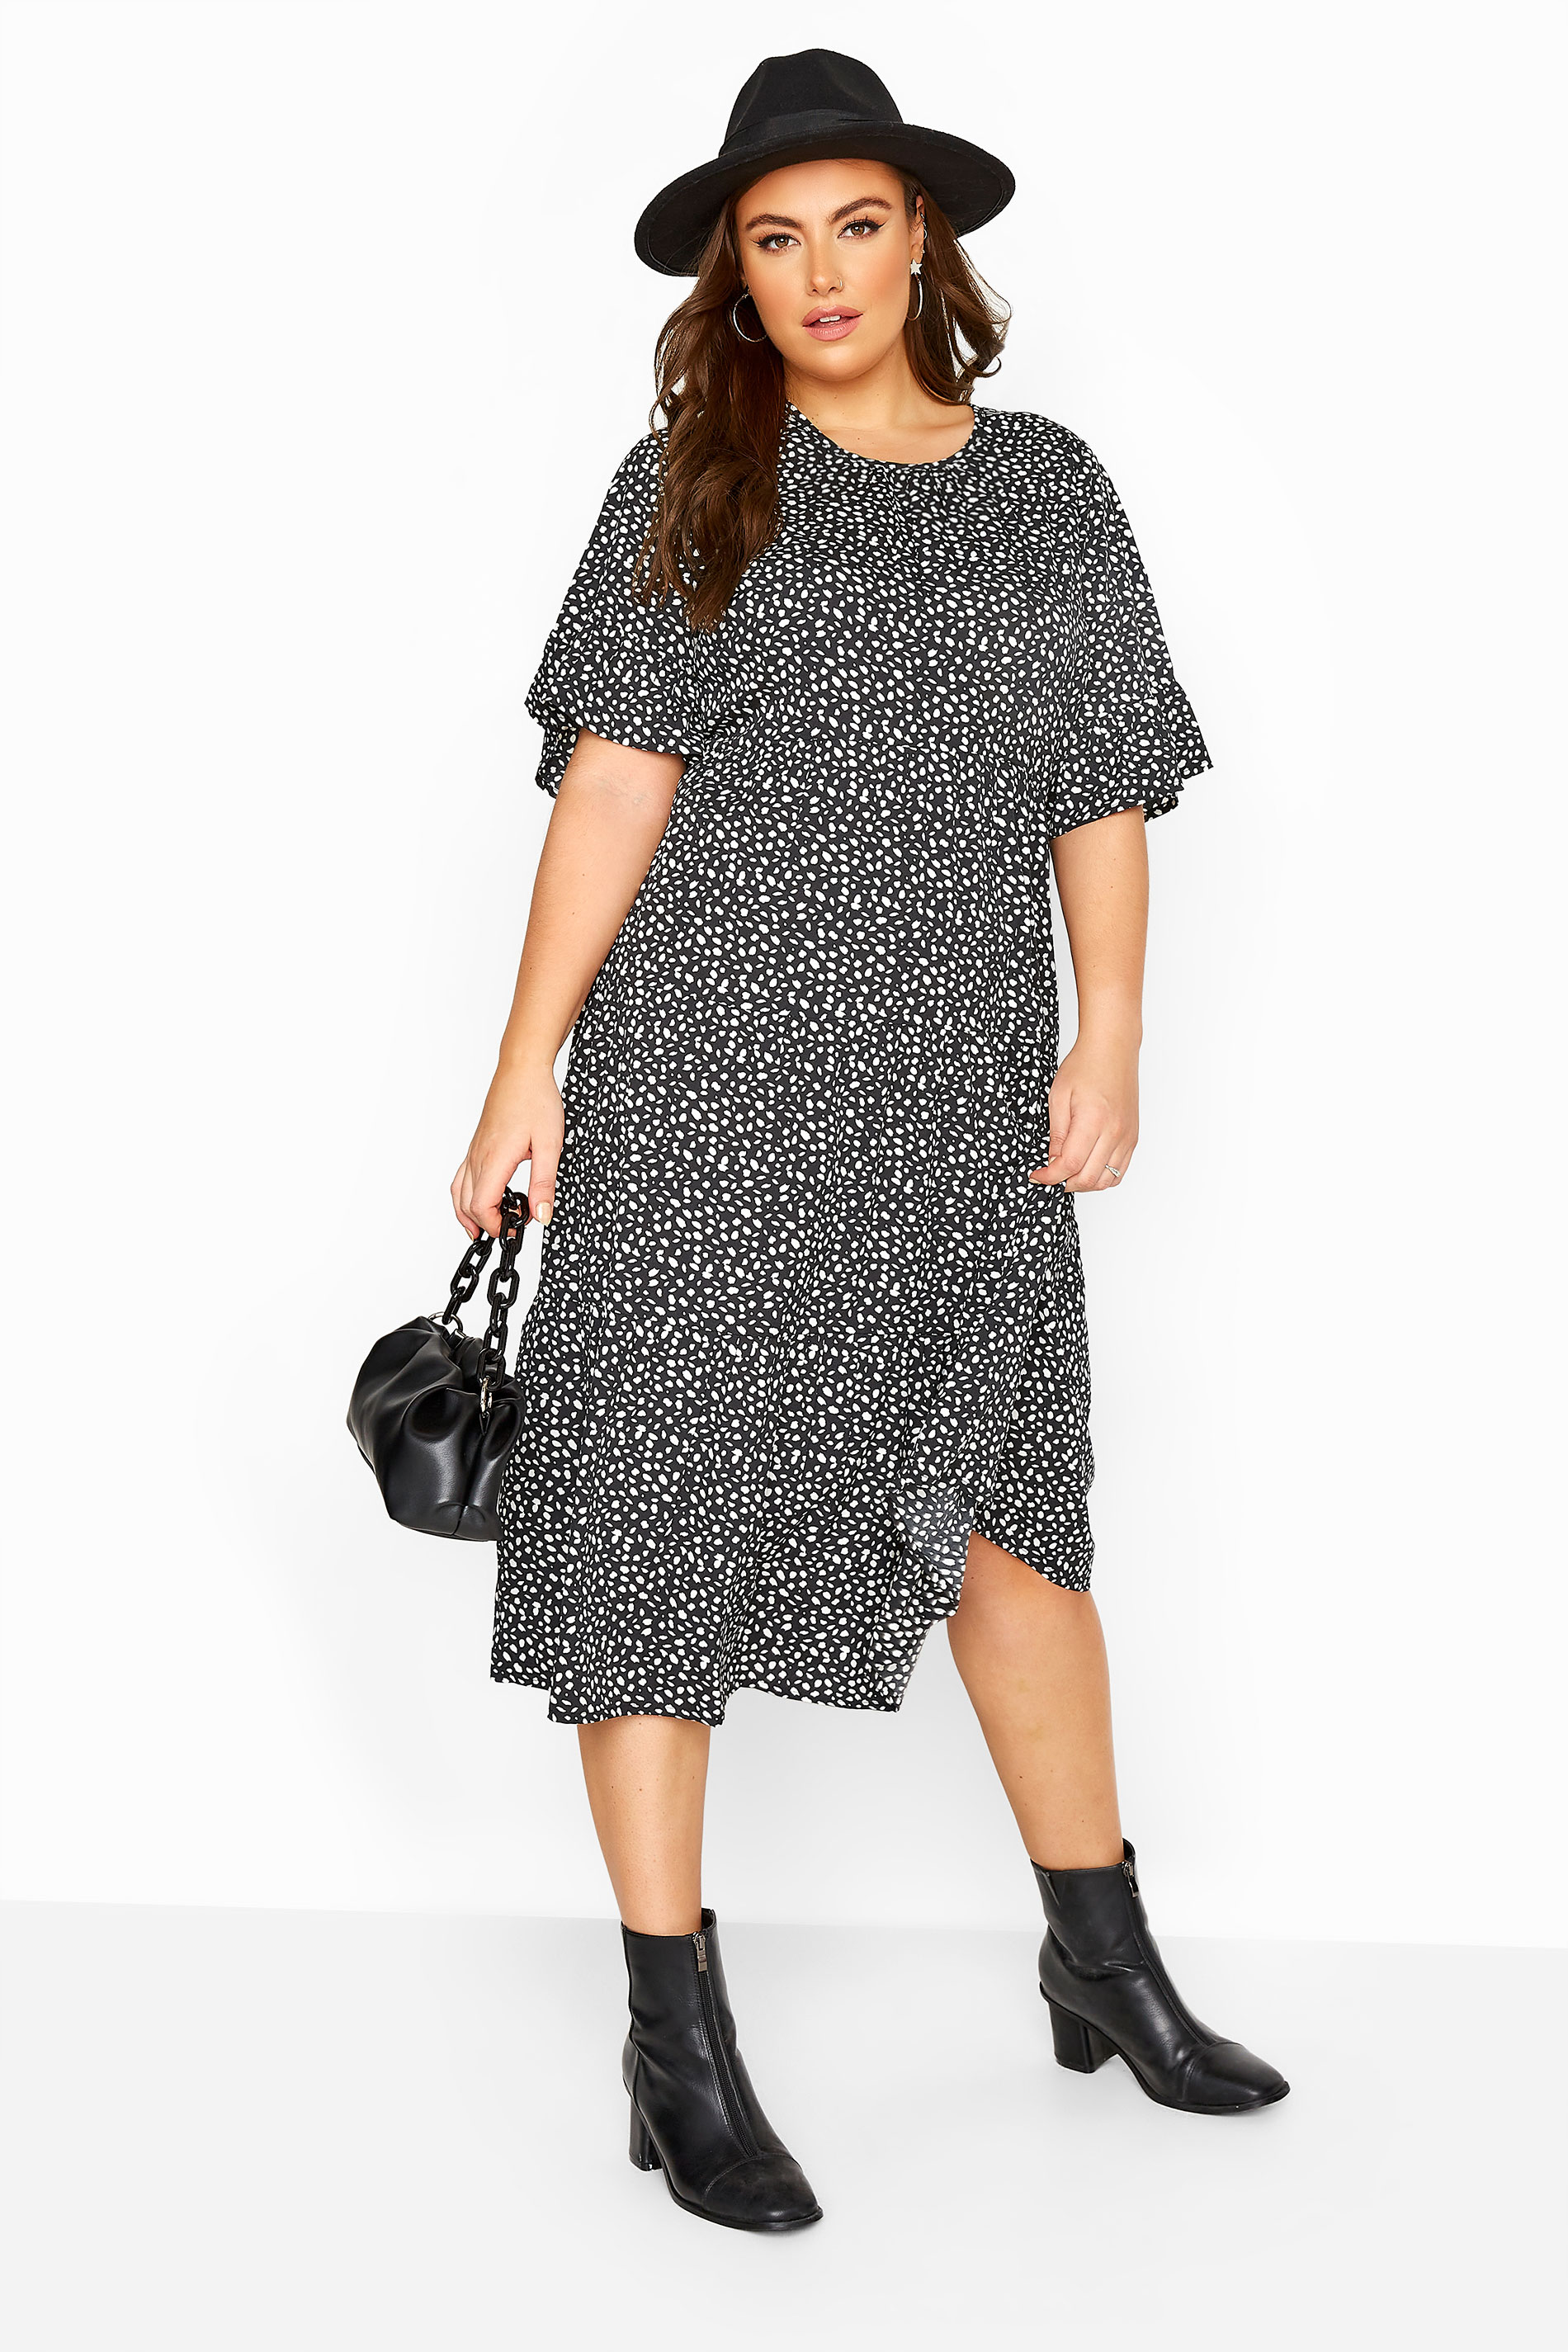 LIMITED COLLECTION Black Dalmatian Spot Tiered Midi Dress